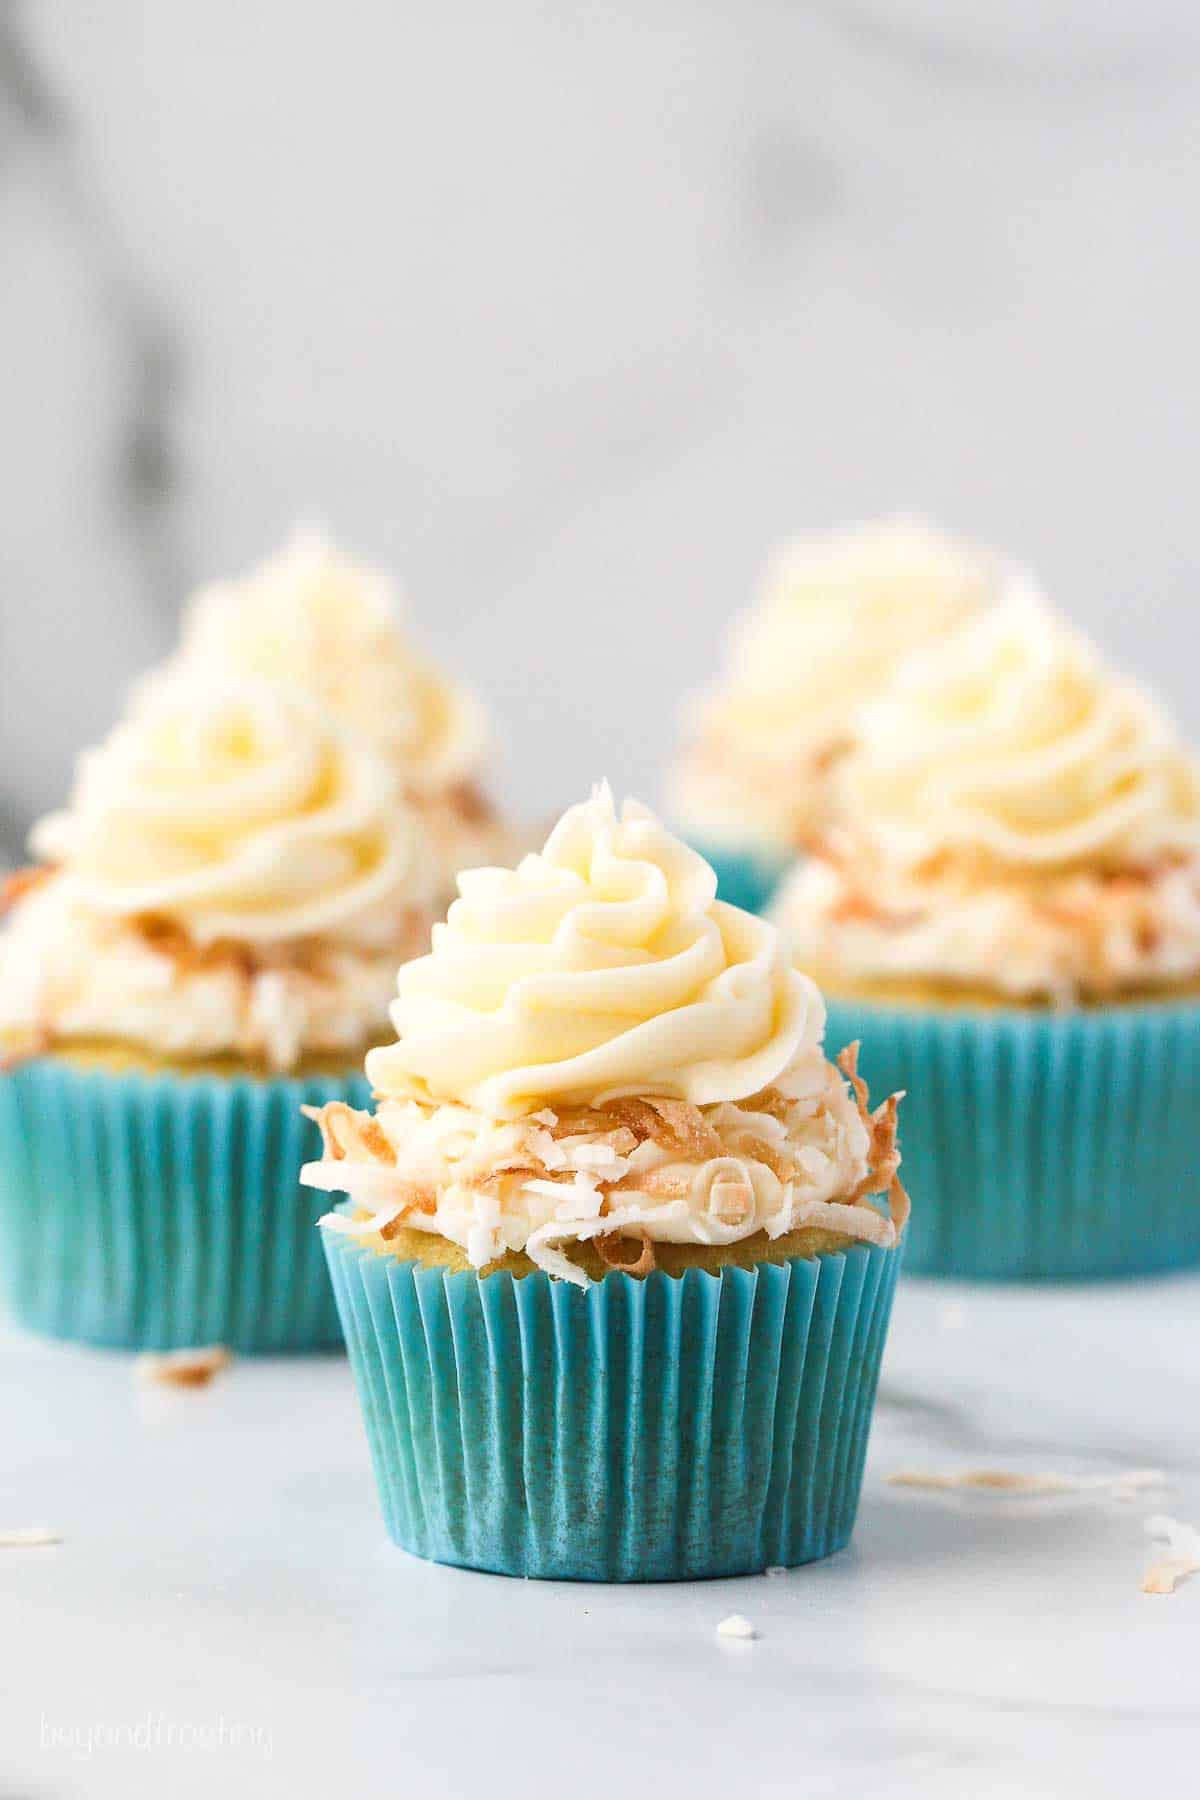 Three coconut cupcakes piled high with frosting